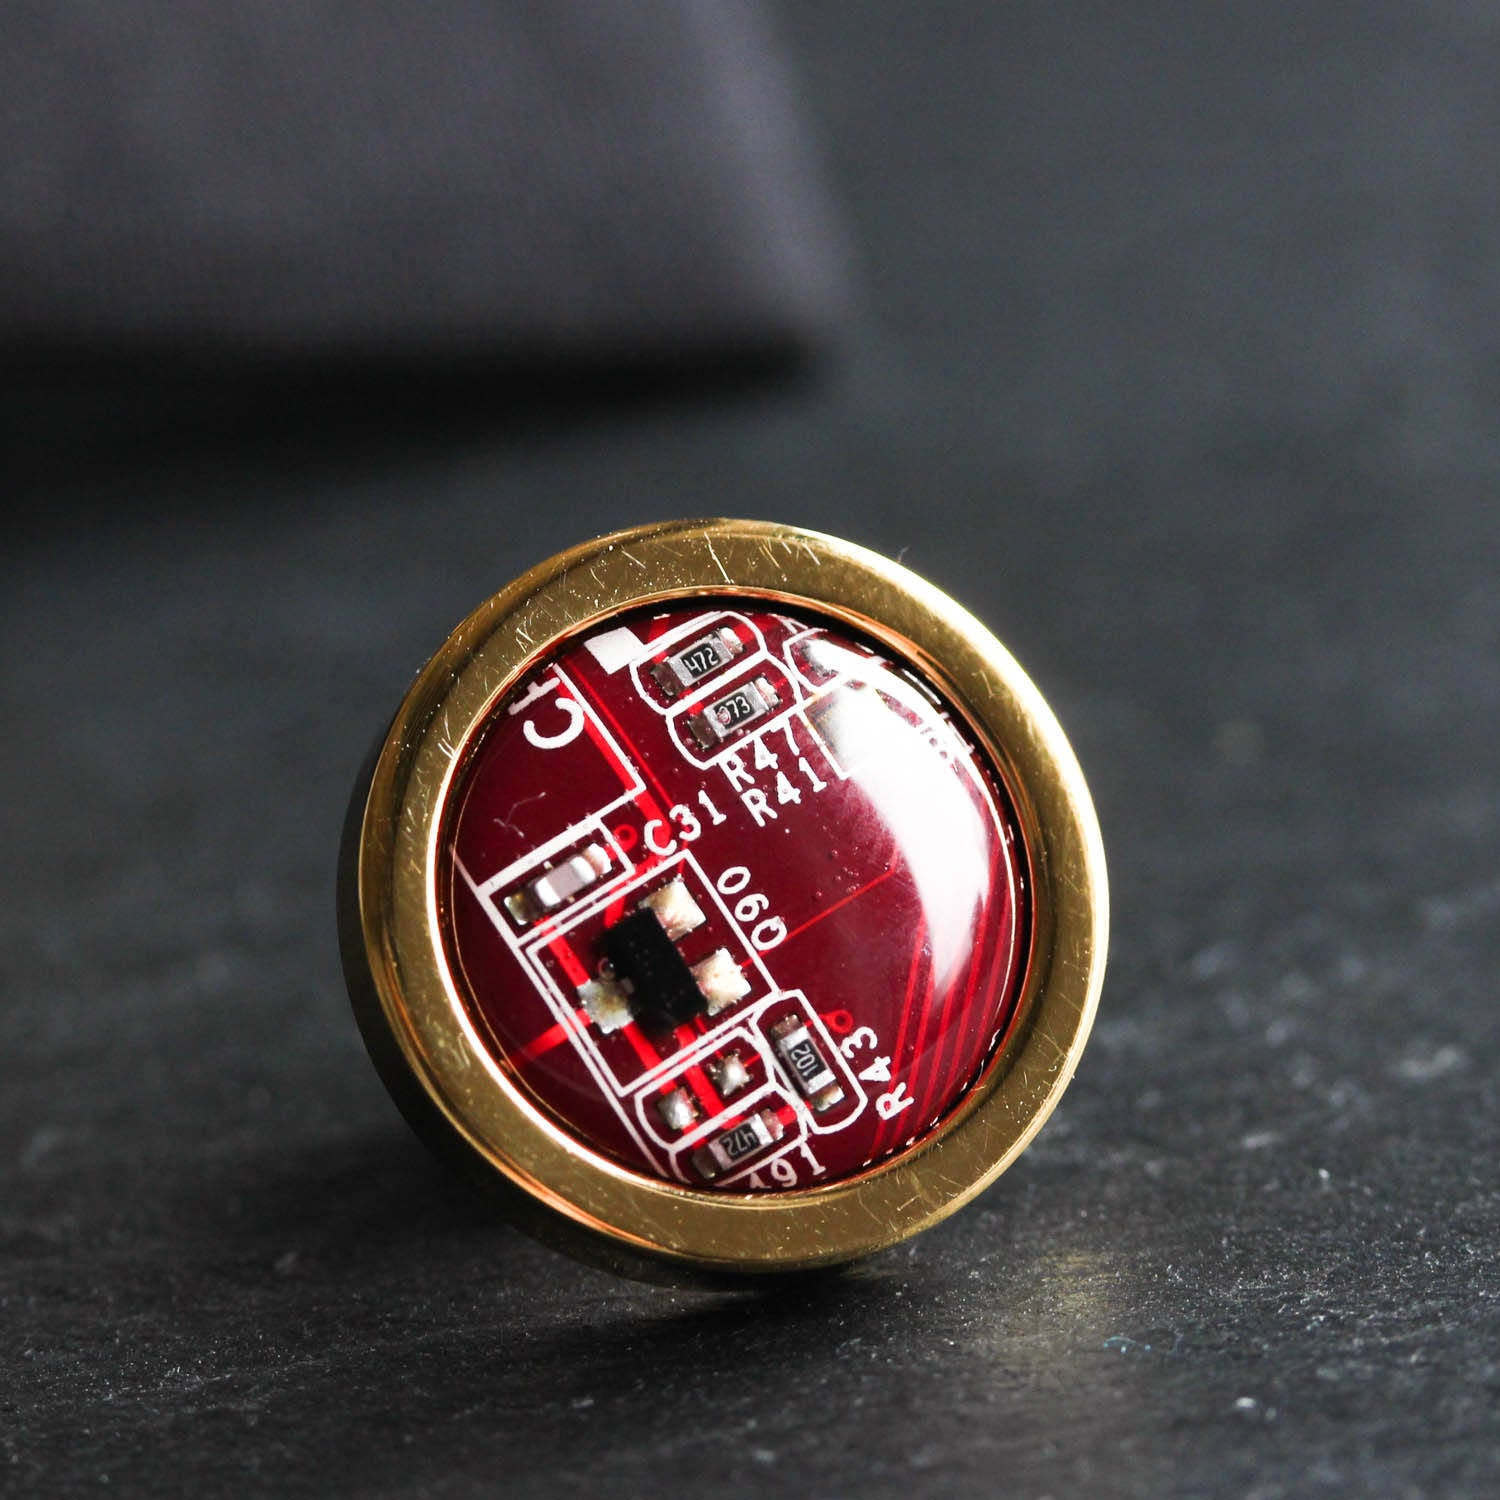 Circuit board tie pin, golden pin